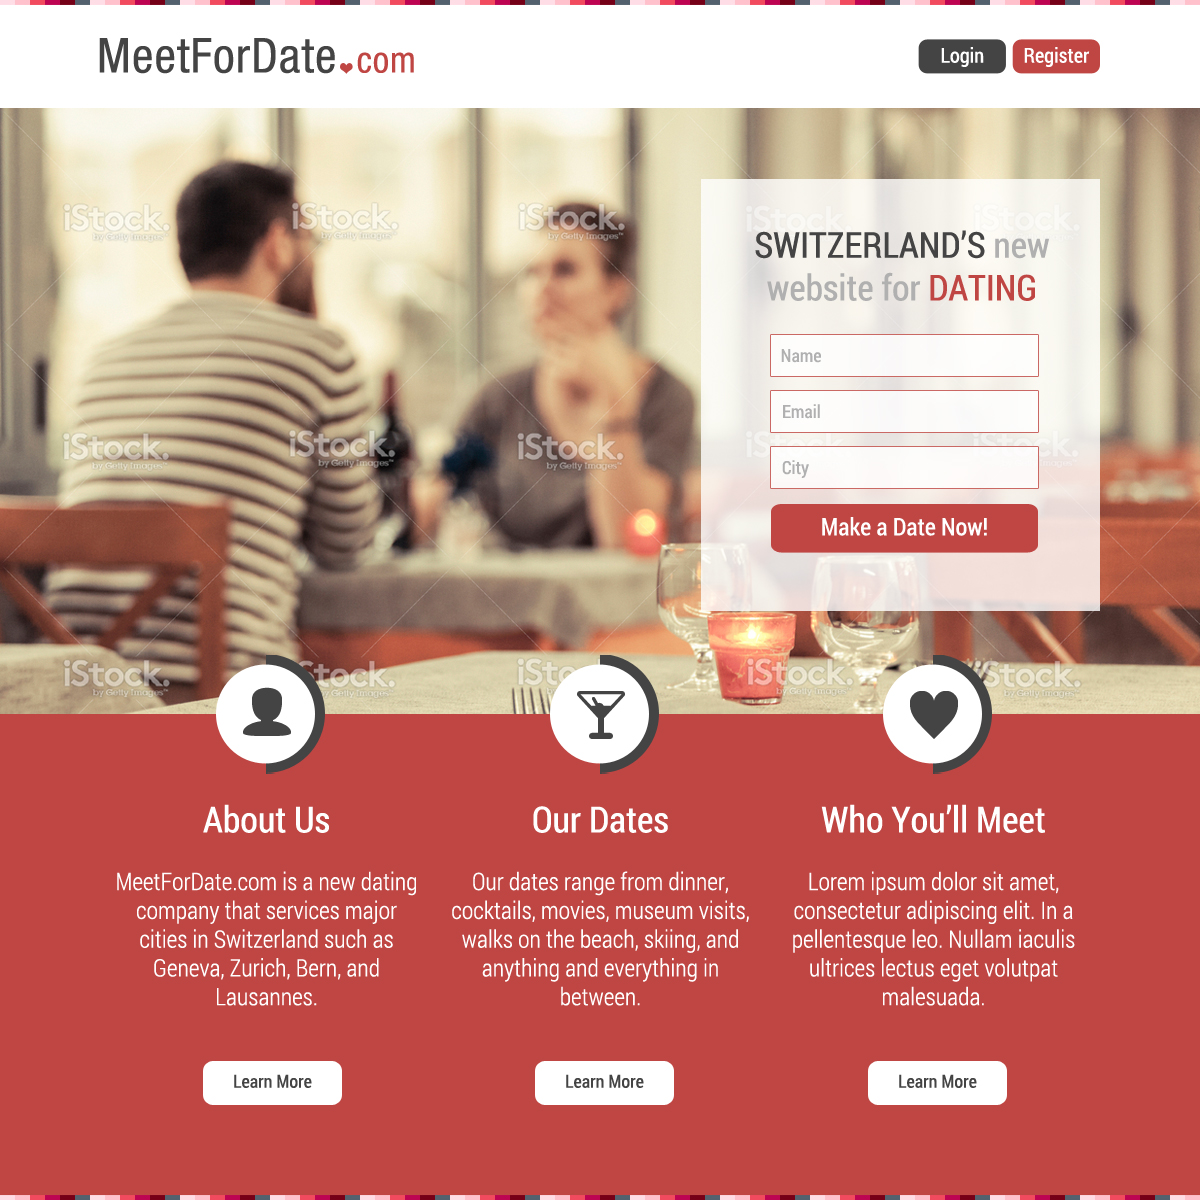 dating sites design Dating and personals websites are one of the most popular sites in the internet nowadays designing it is a profitable endeavor for software developers and designers to make your website more interesting, professional web graphics design should be used.